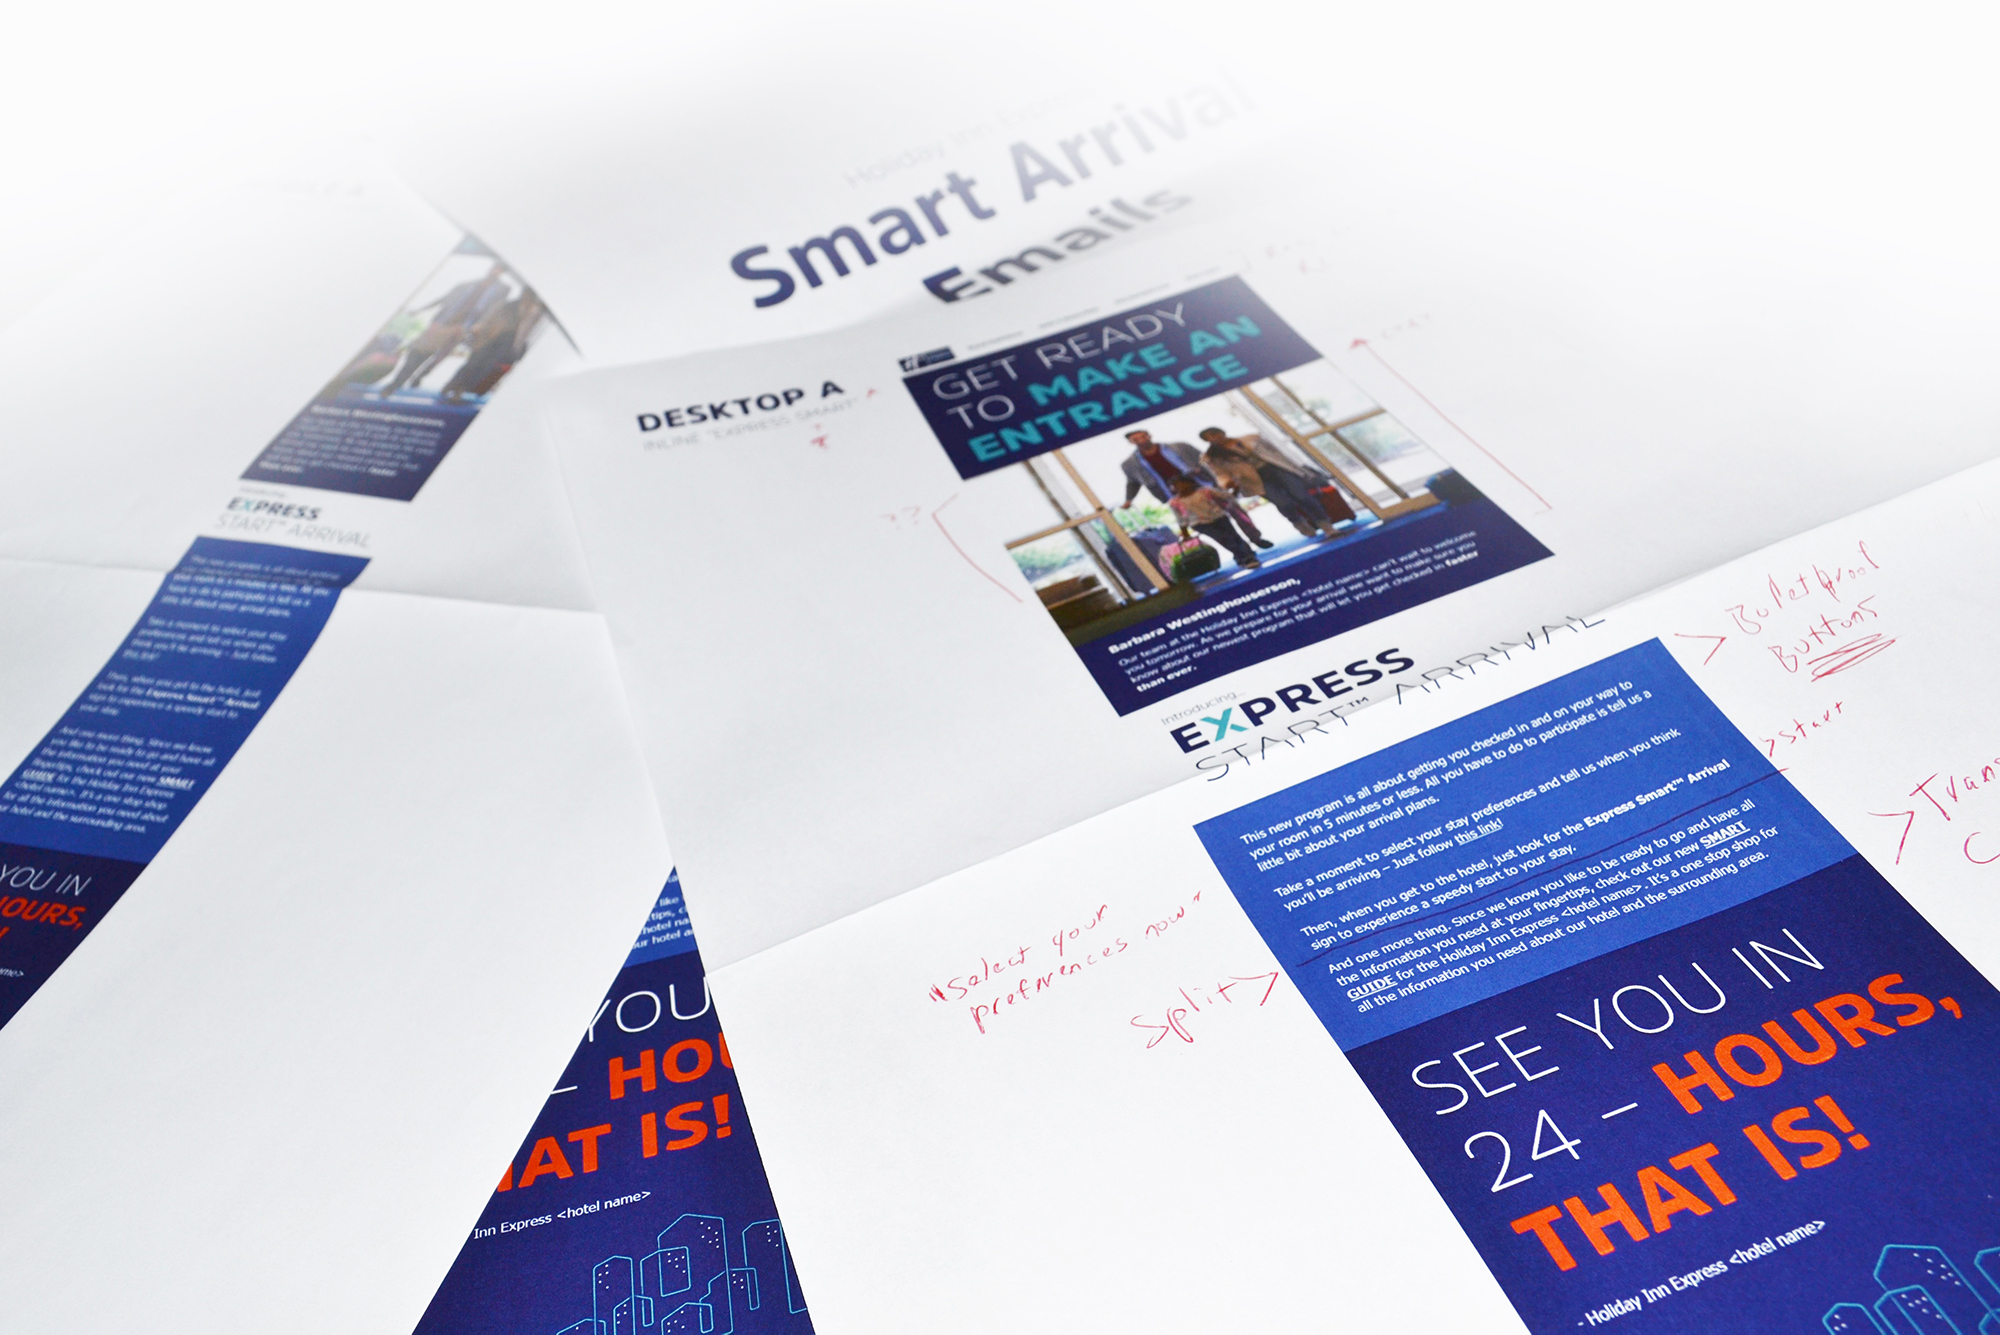 An image of printed out iterations of the smart guide piled on top of one-another with revision notes on them in red ink